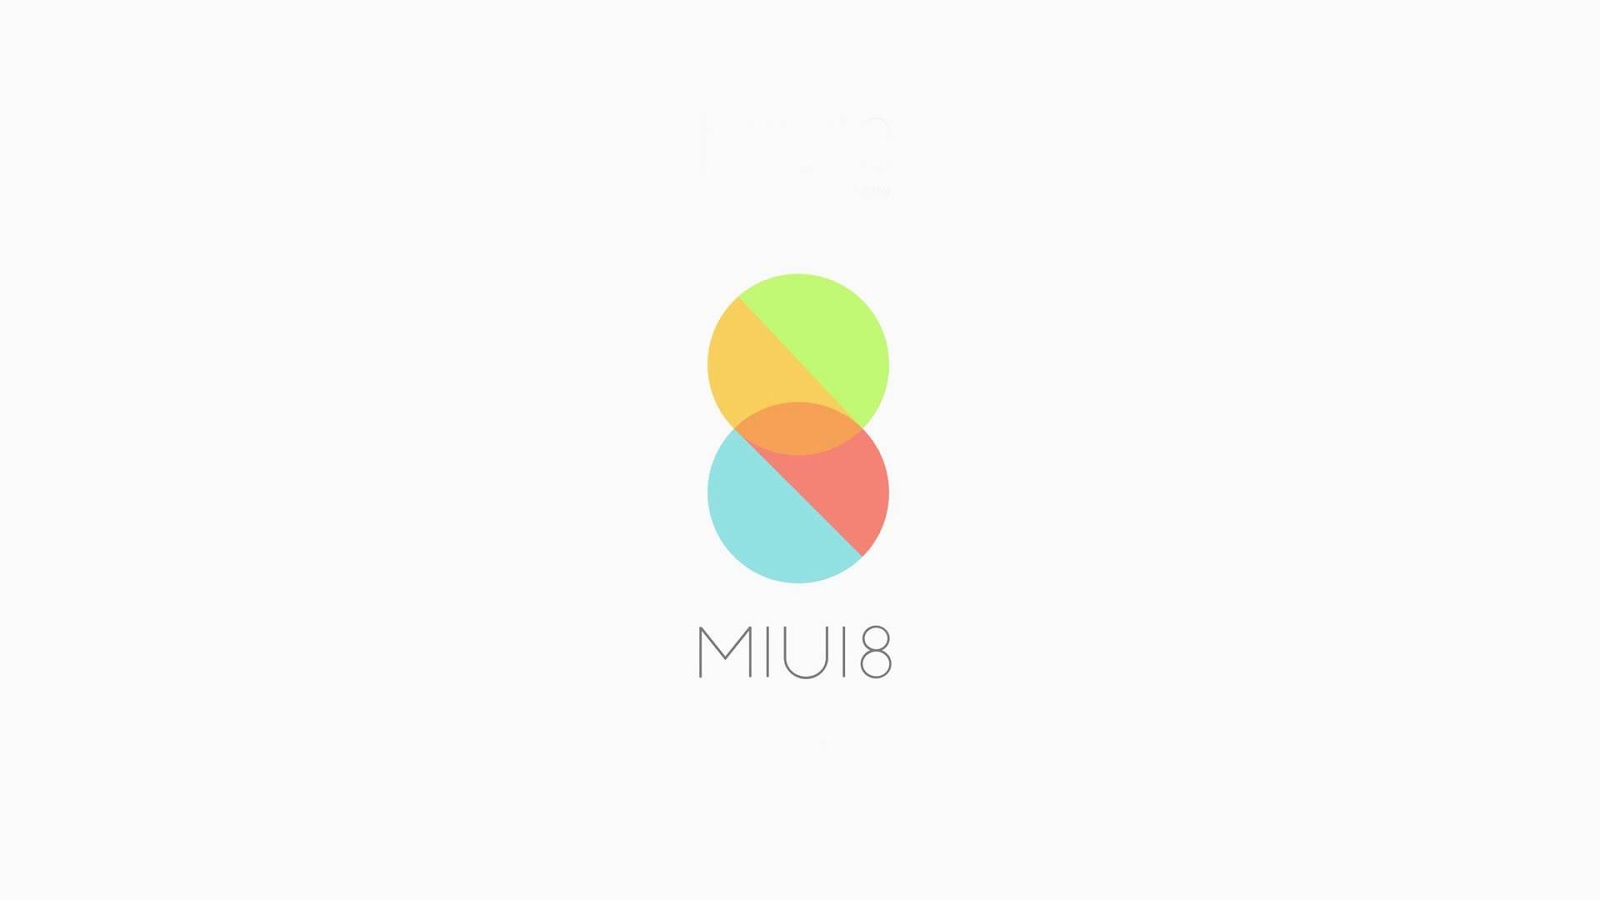 MT6592: [STABLE][GLOBAL] MIUI 8 V6 9 15 For Infinix X551